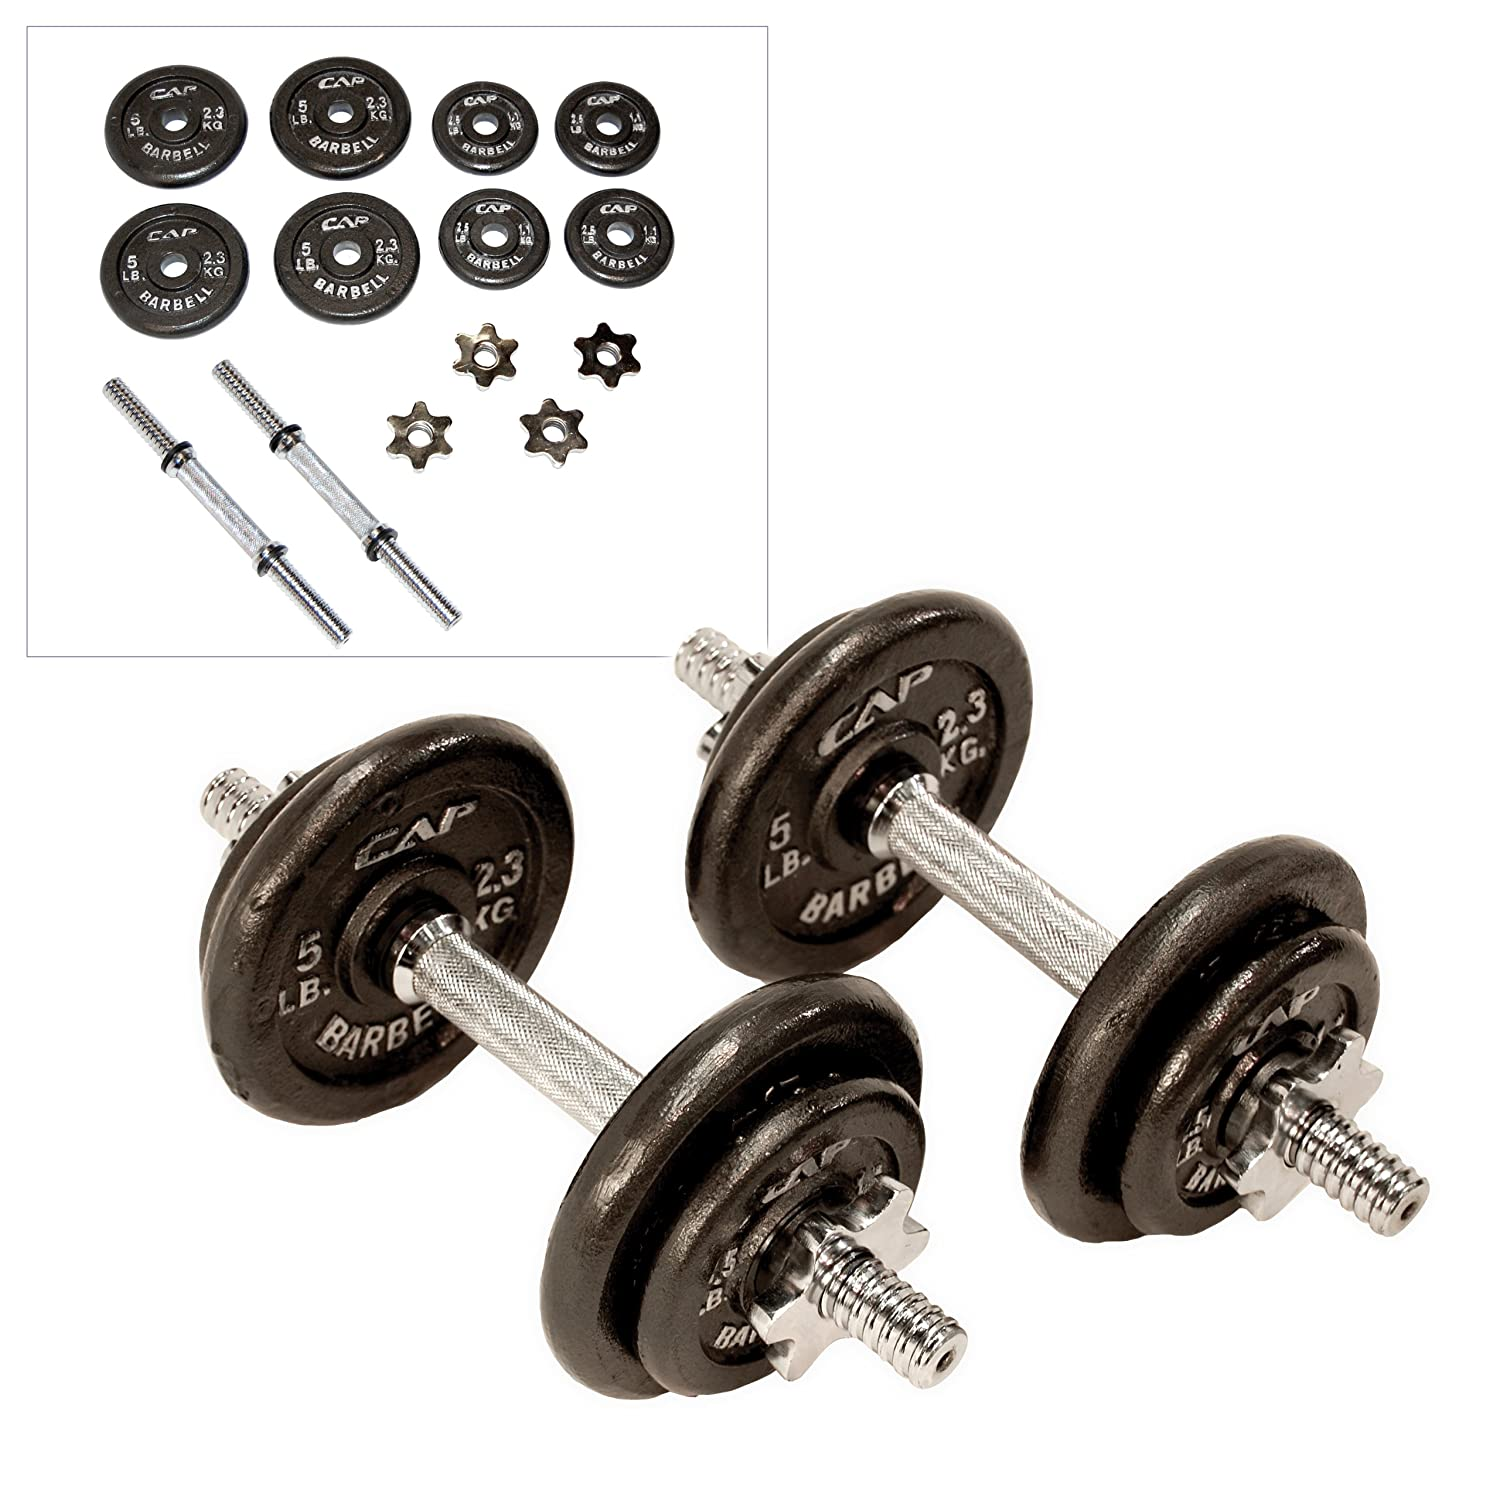 barbell weights - photo #35